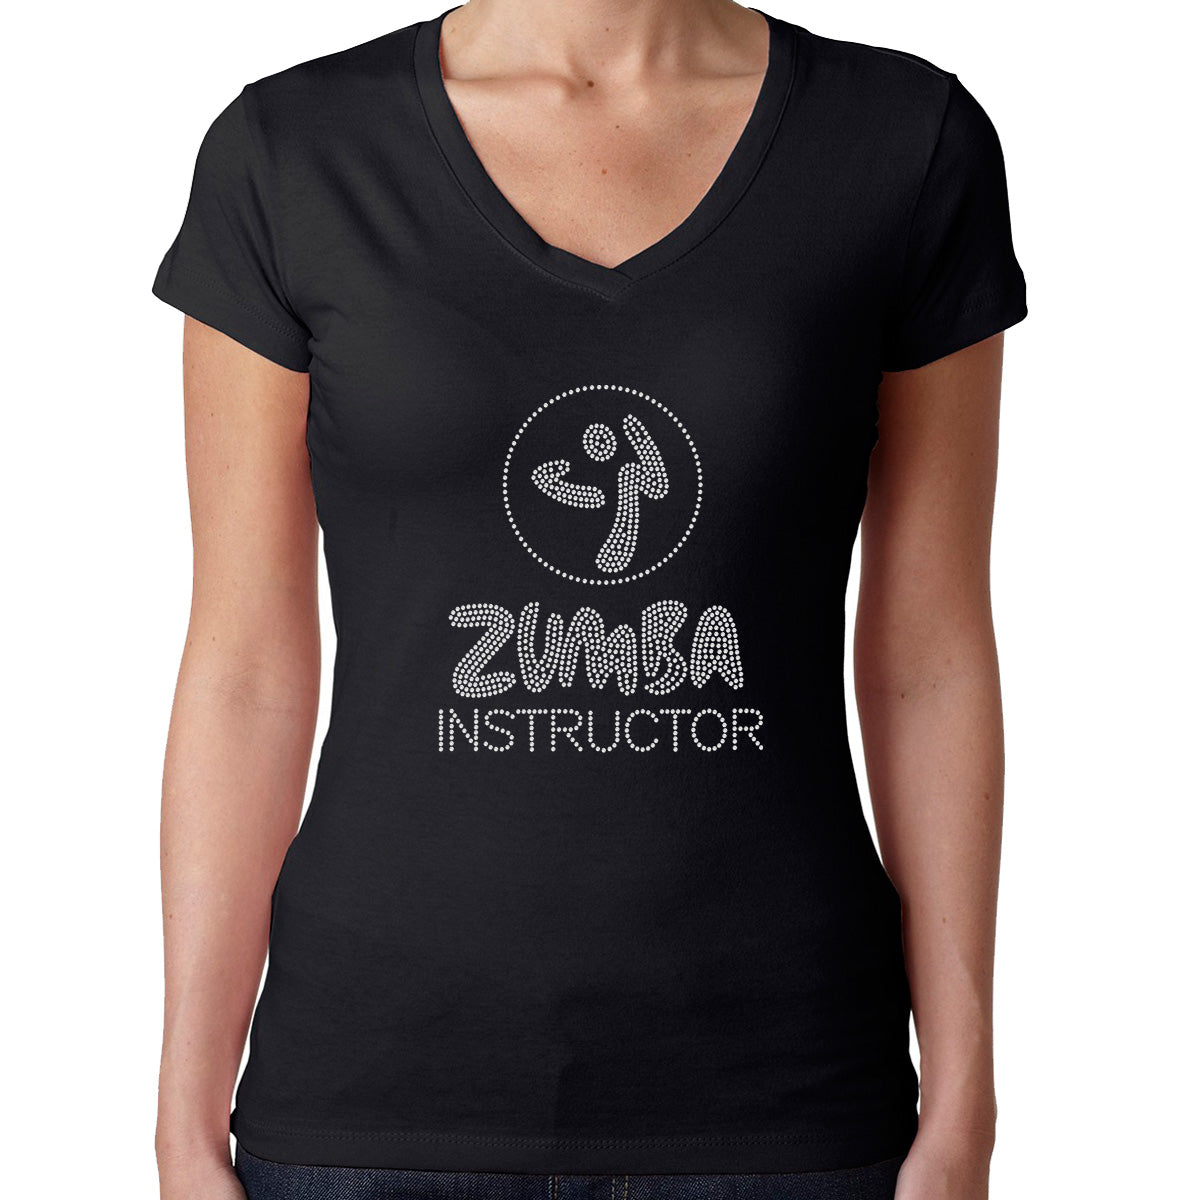 Womens T-Shirt Rhinestone Bling Black Fitted Tee Zumba Instructor Dance Fitness